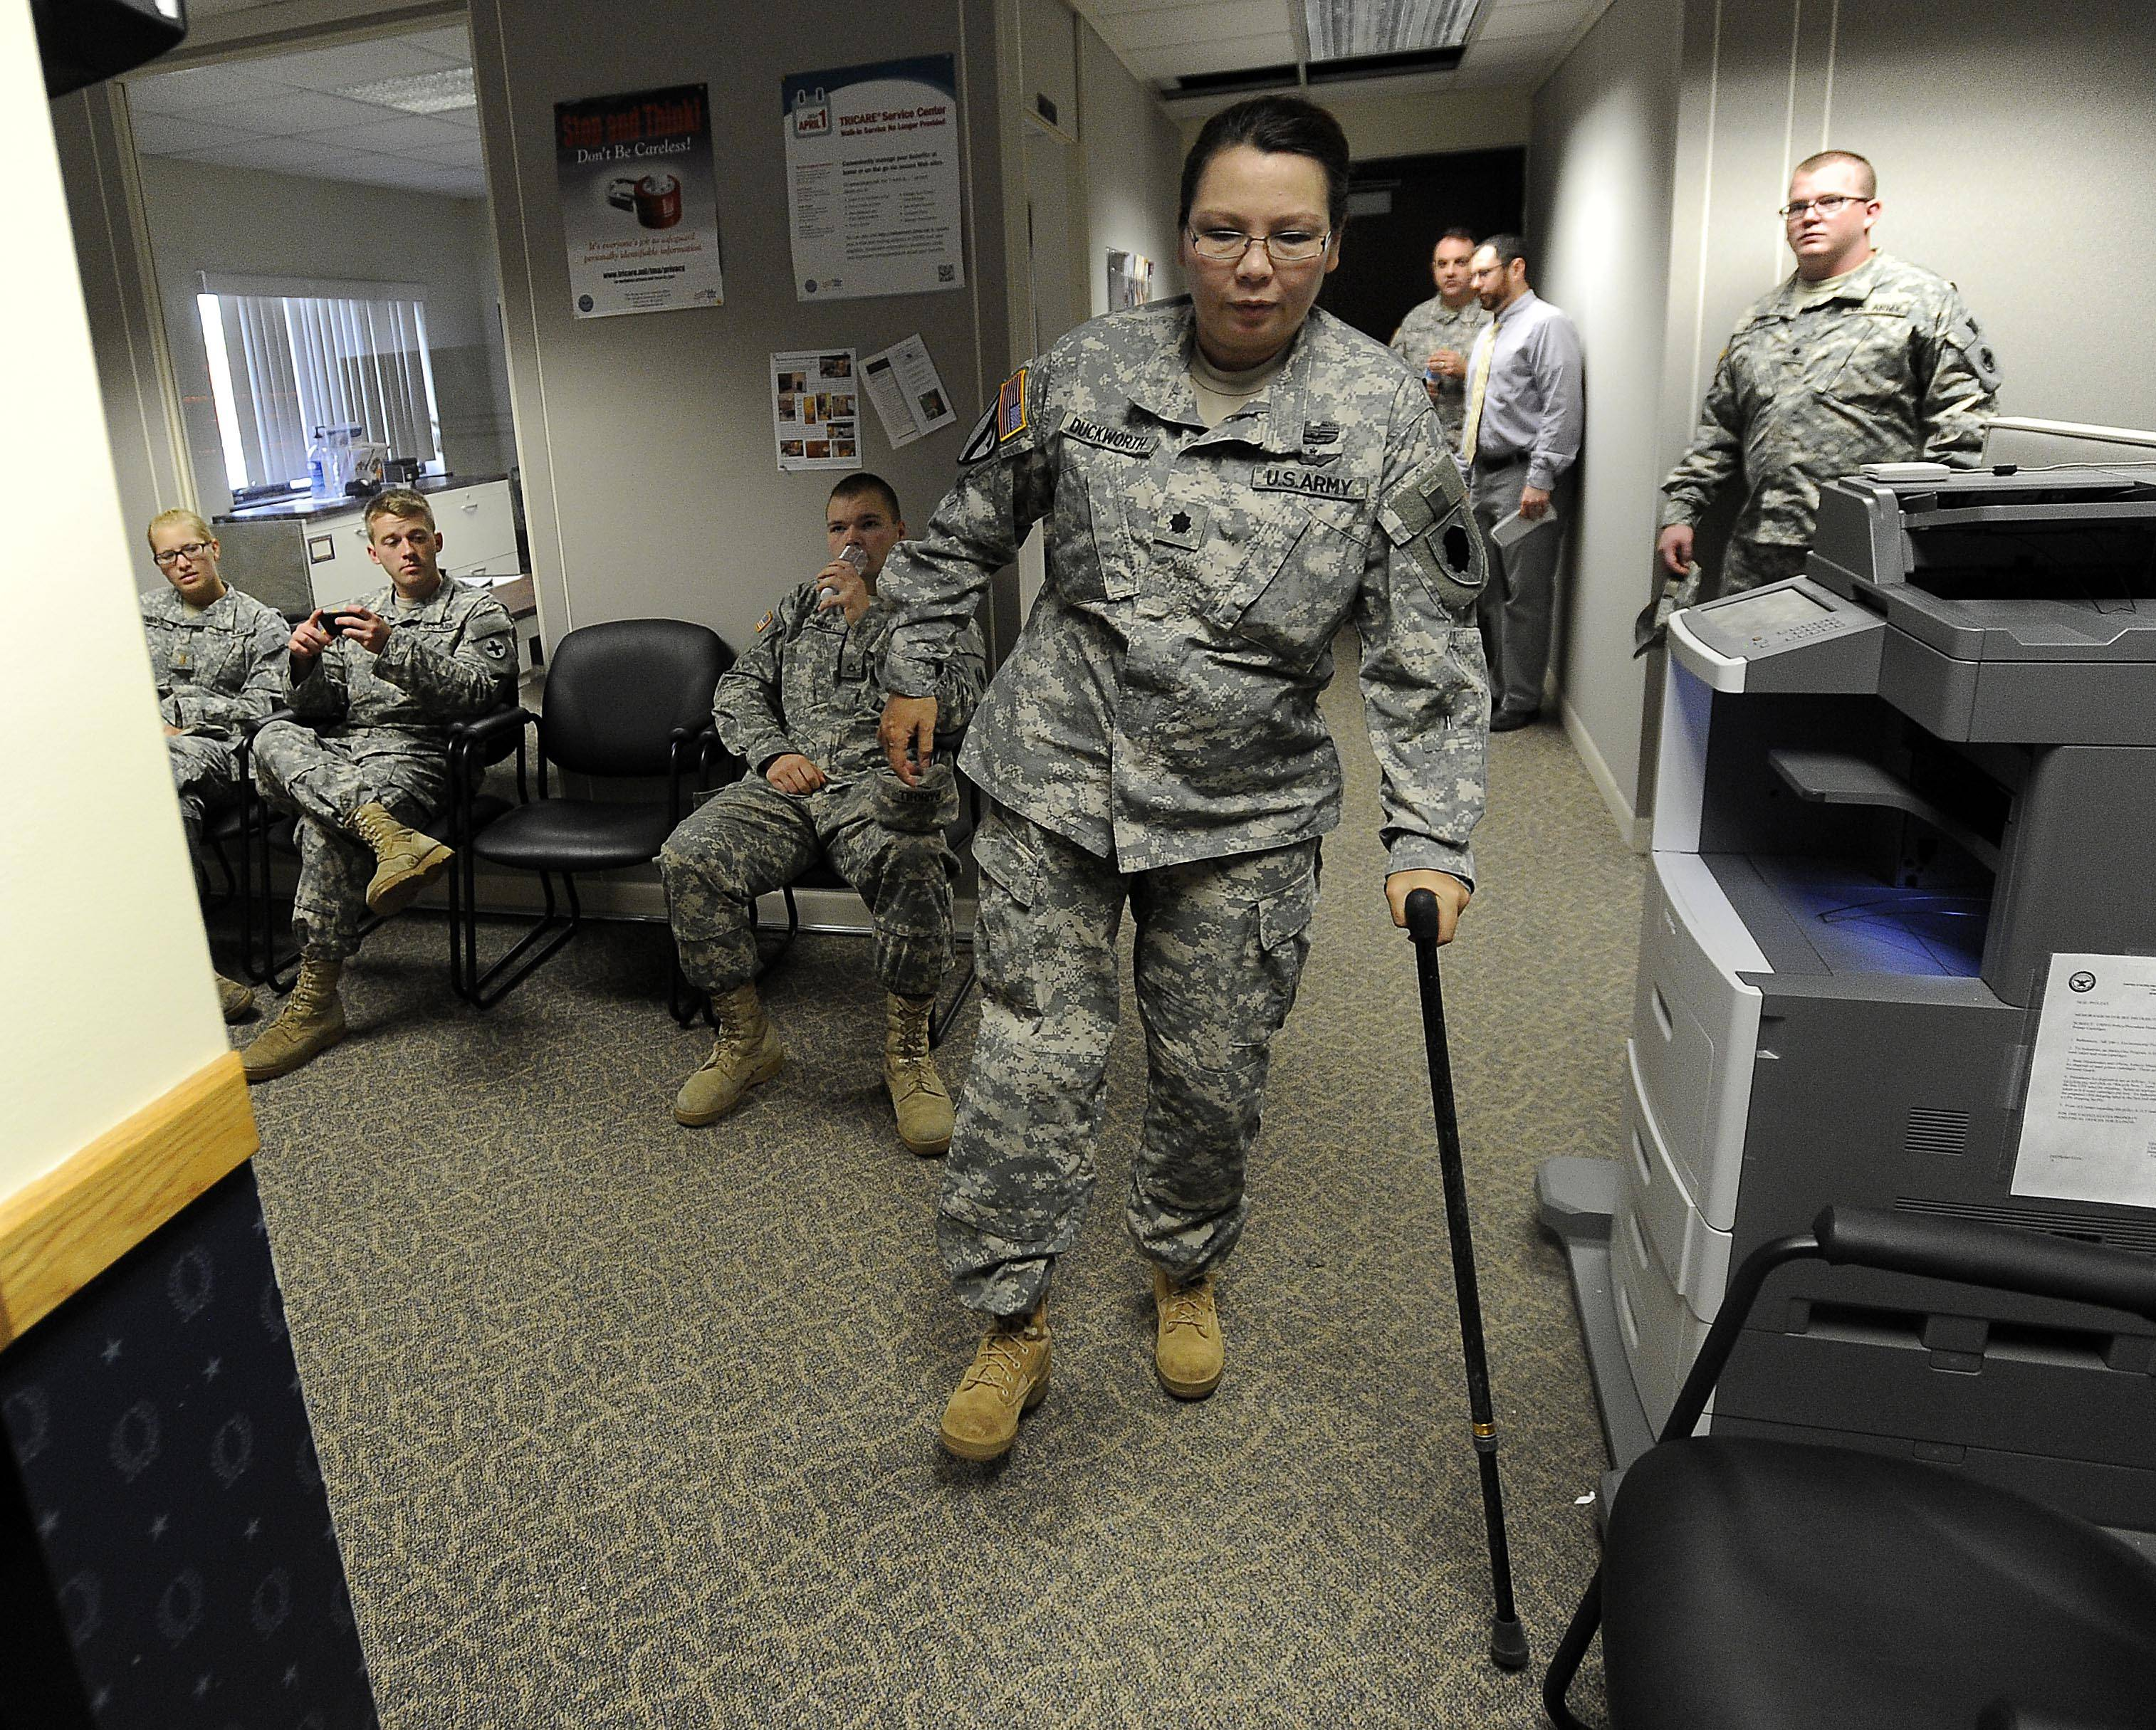 Tammy Duckworth walks through a building at the Illinois National Guard's Camp Lincoln in Springfield on her final drill weekend in the military.